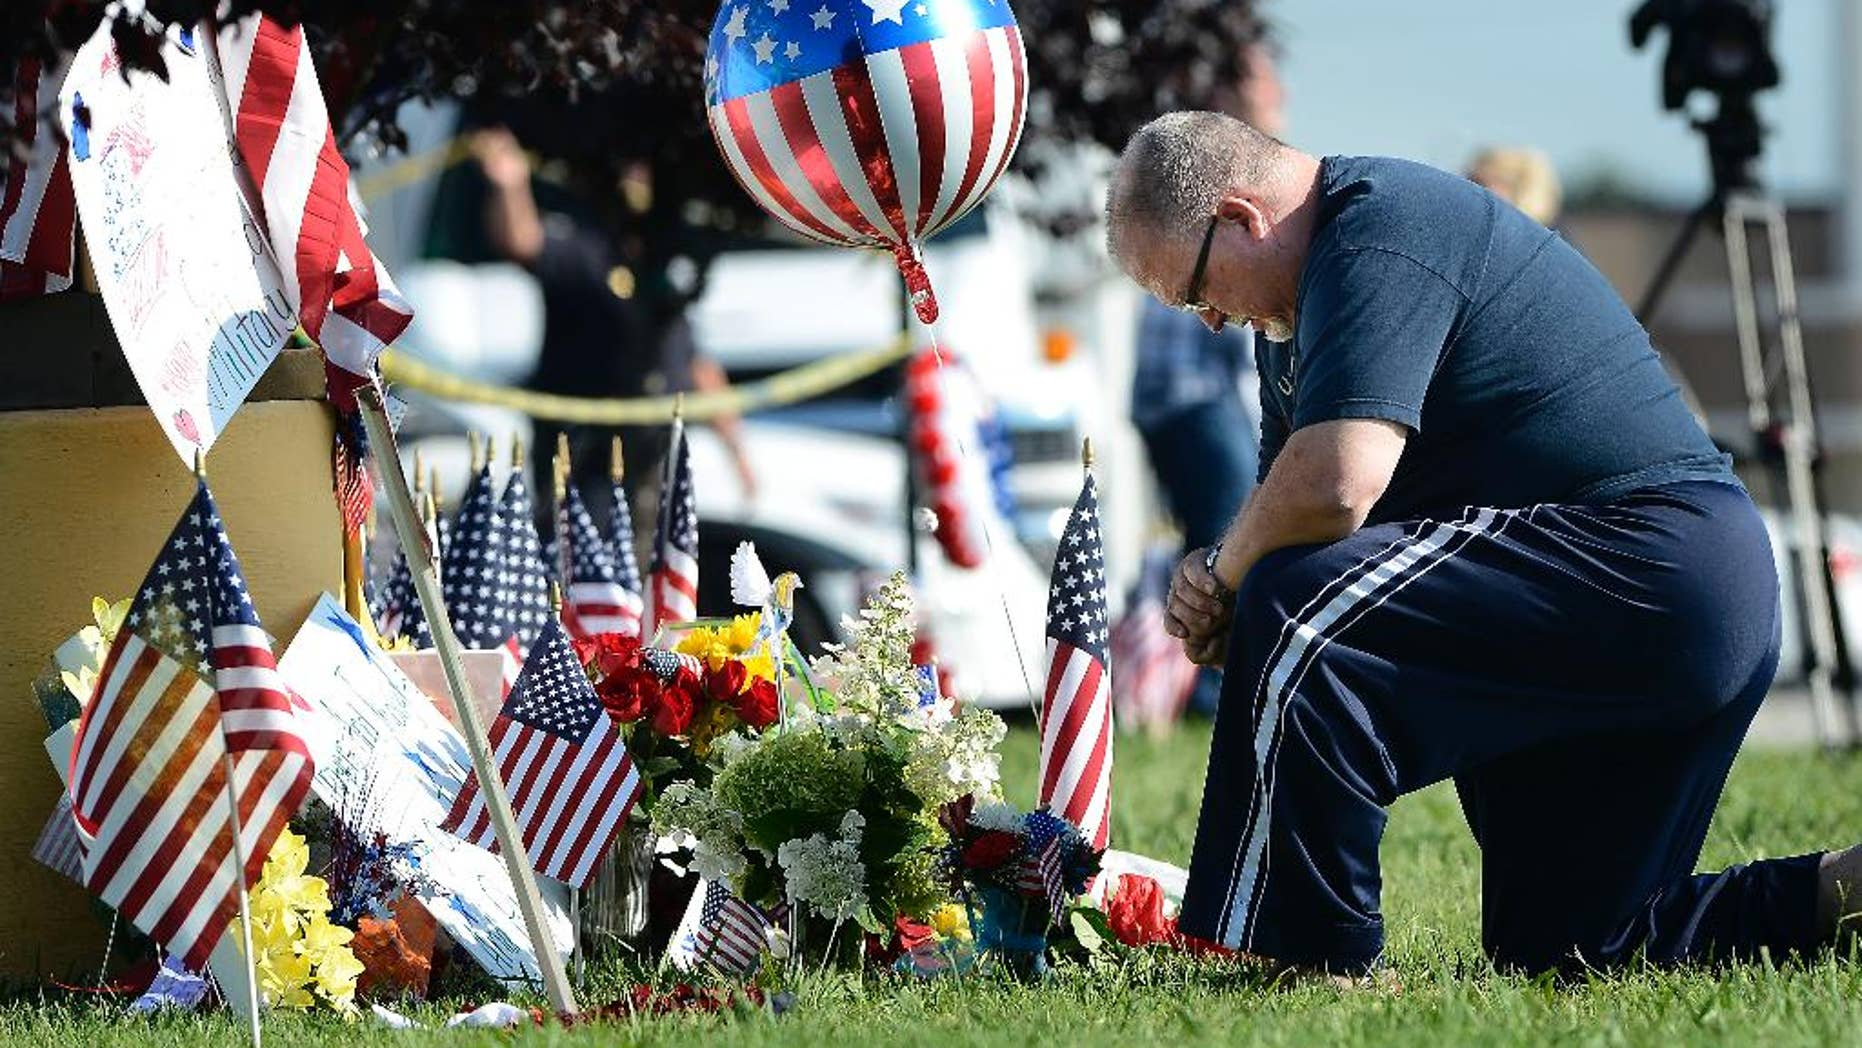 Bill Lettmkuhl kneels by a makeshift memorial in front of near the Armed Forces Career Center on Friday, July 17, 2015, in Chattanooga, Tenn. Muhammad Youssef Abdulazeez, of Hixson, Tenn., attacked two military facilities on Thursday, in a shooting rampage that killed four Marines. (AP Photo/Mark Zaleski)